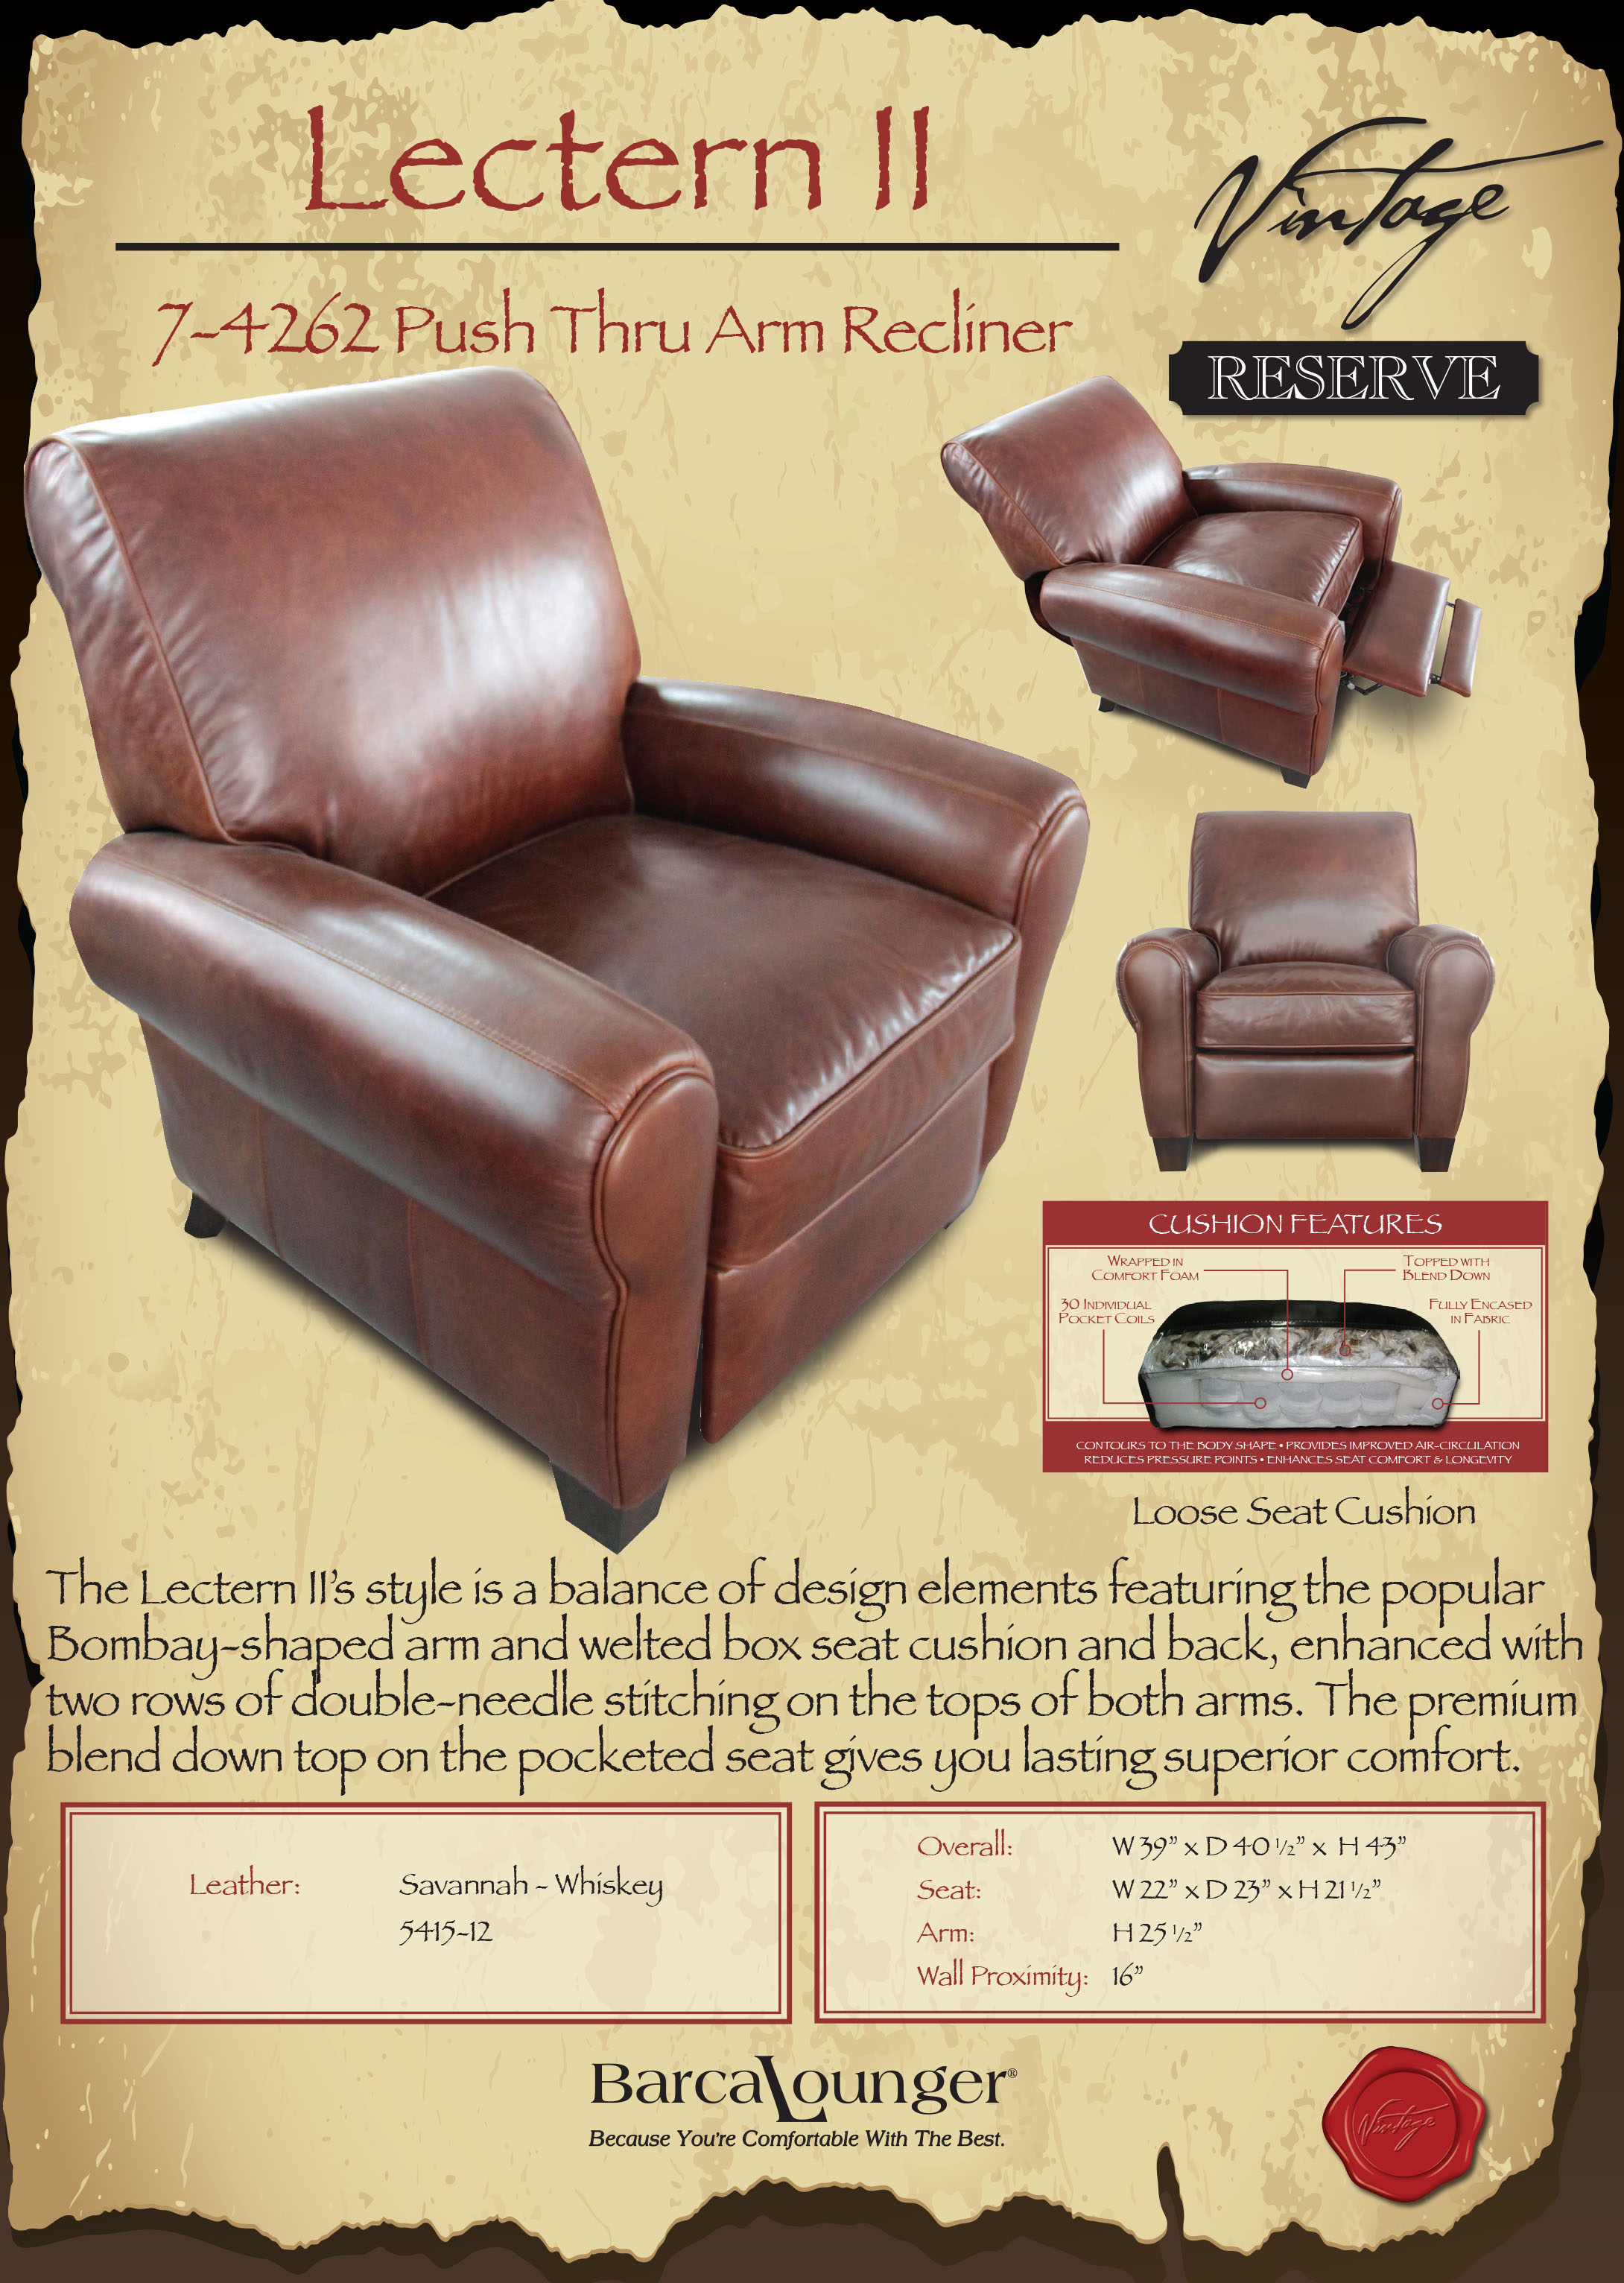 Barcalounger Lectern II Recliner Chair Dimensions & Barcalounger Lectern II Recliner Chair - Leather Recliner Chair ... islam-shia.org